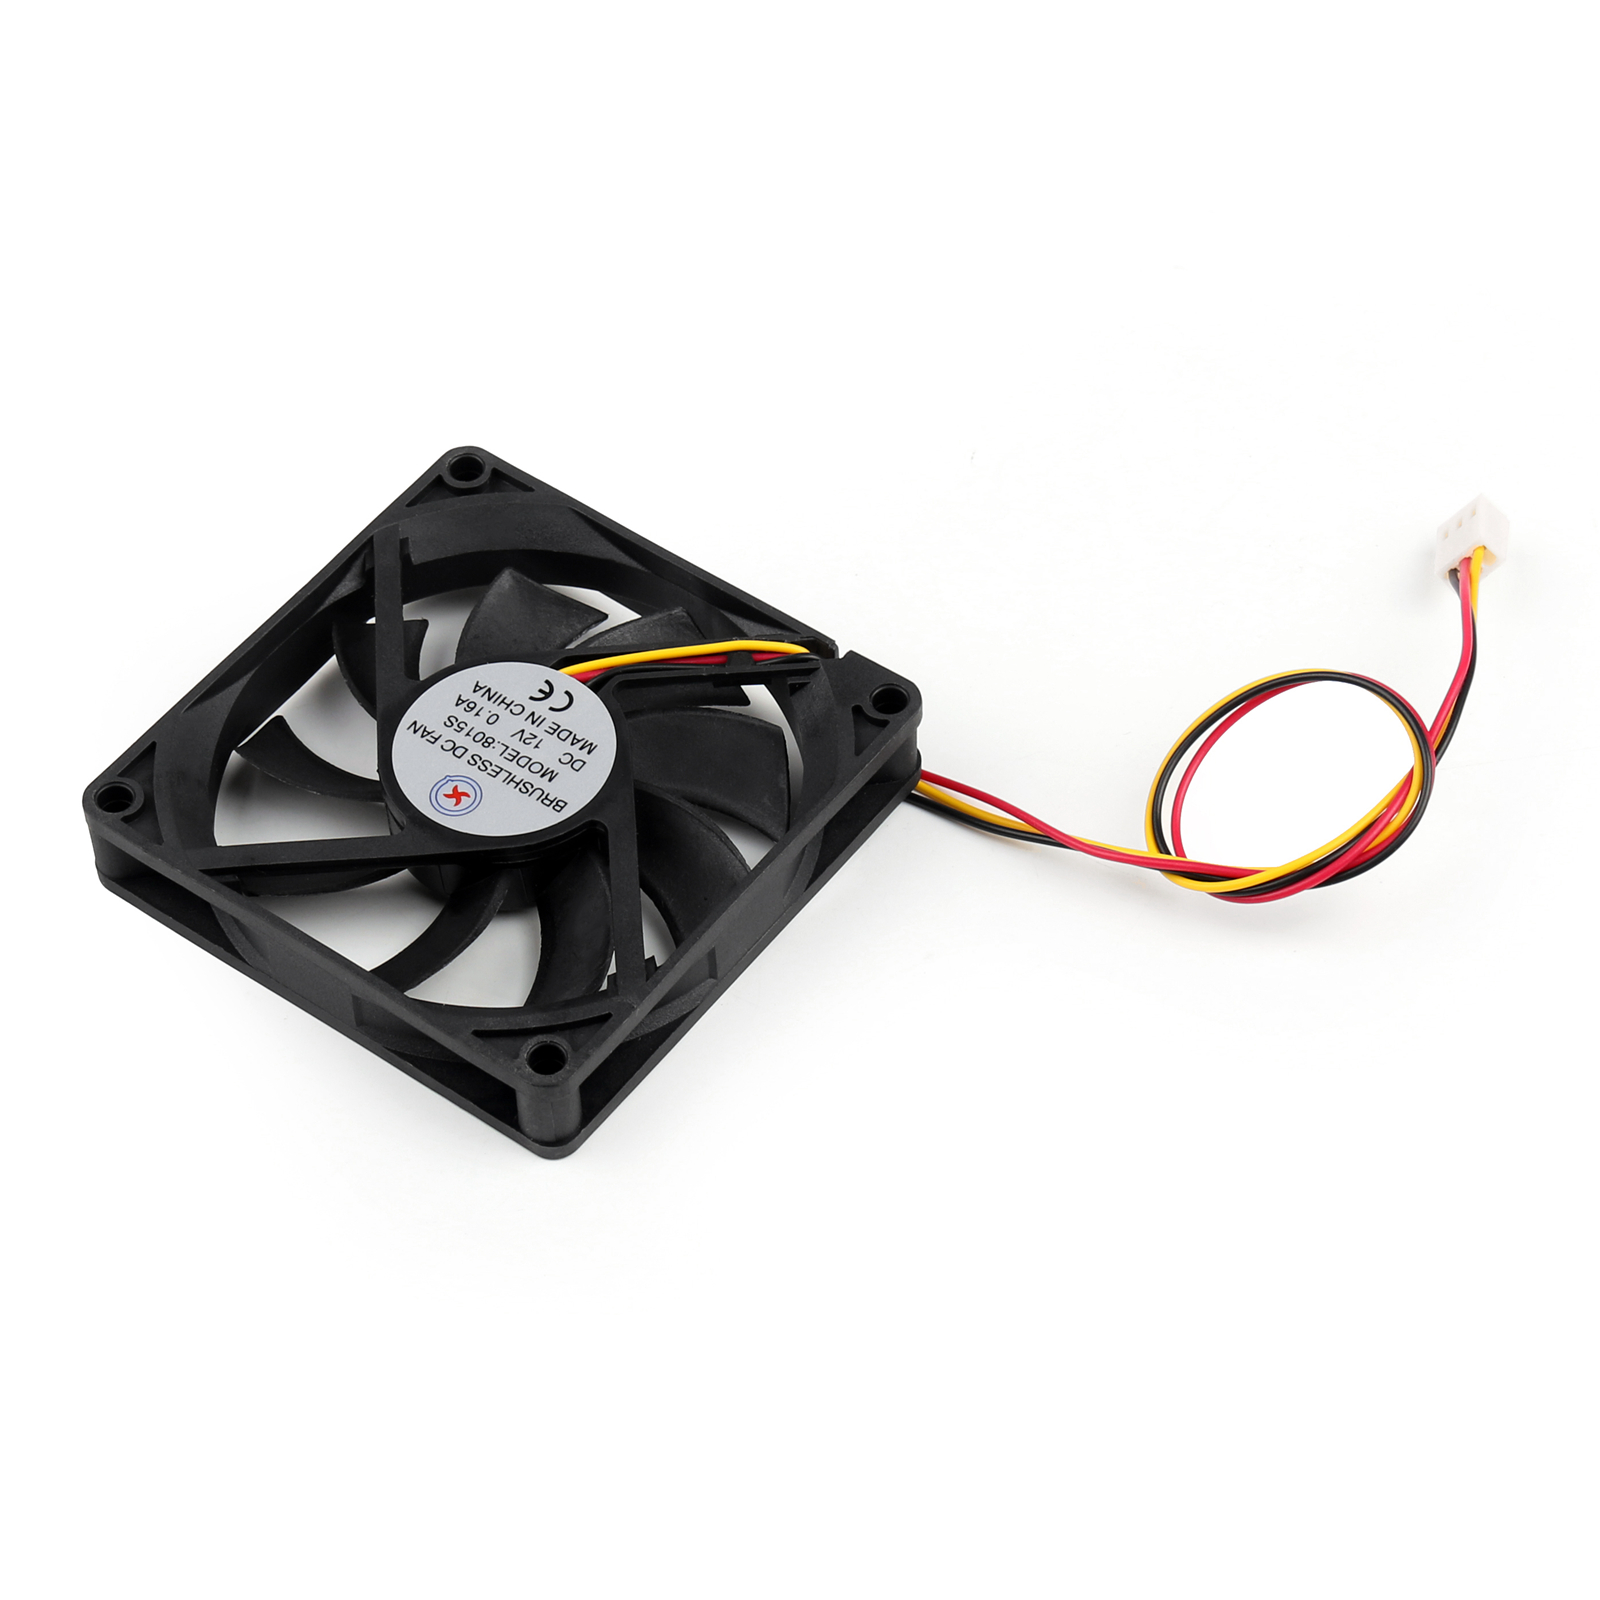 Dc Brushless Cooling Pc Computer Fan 12v 016a 8015s 80x80x15mm 3 Foxconn Wire Diagram Type 2 Size 80x80x15mmlxwxh Volume 4 Connector Pin 5 Bearing Sleeve 6 Operation Voltage